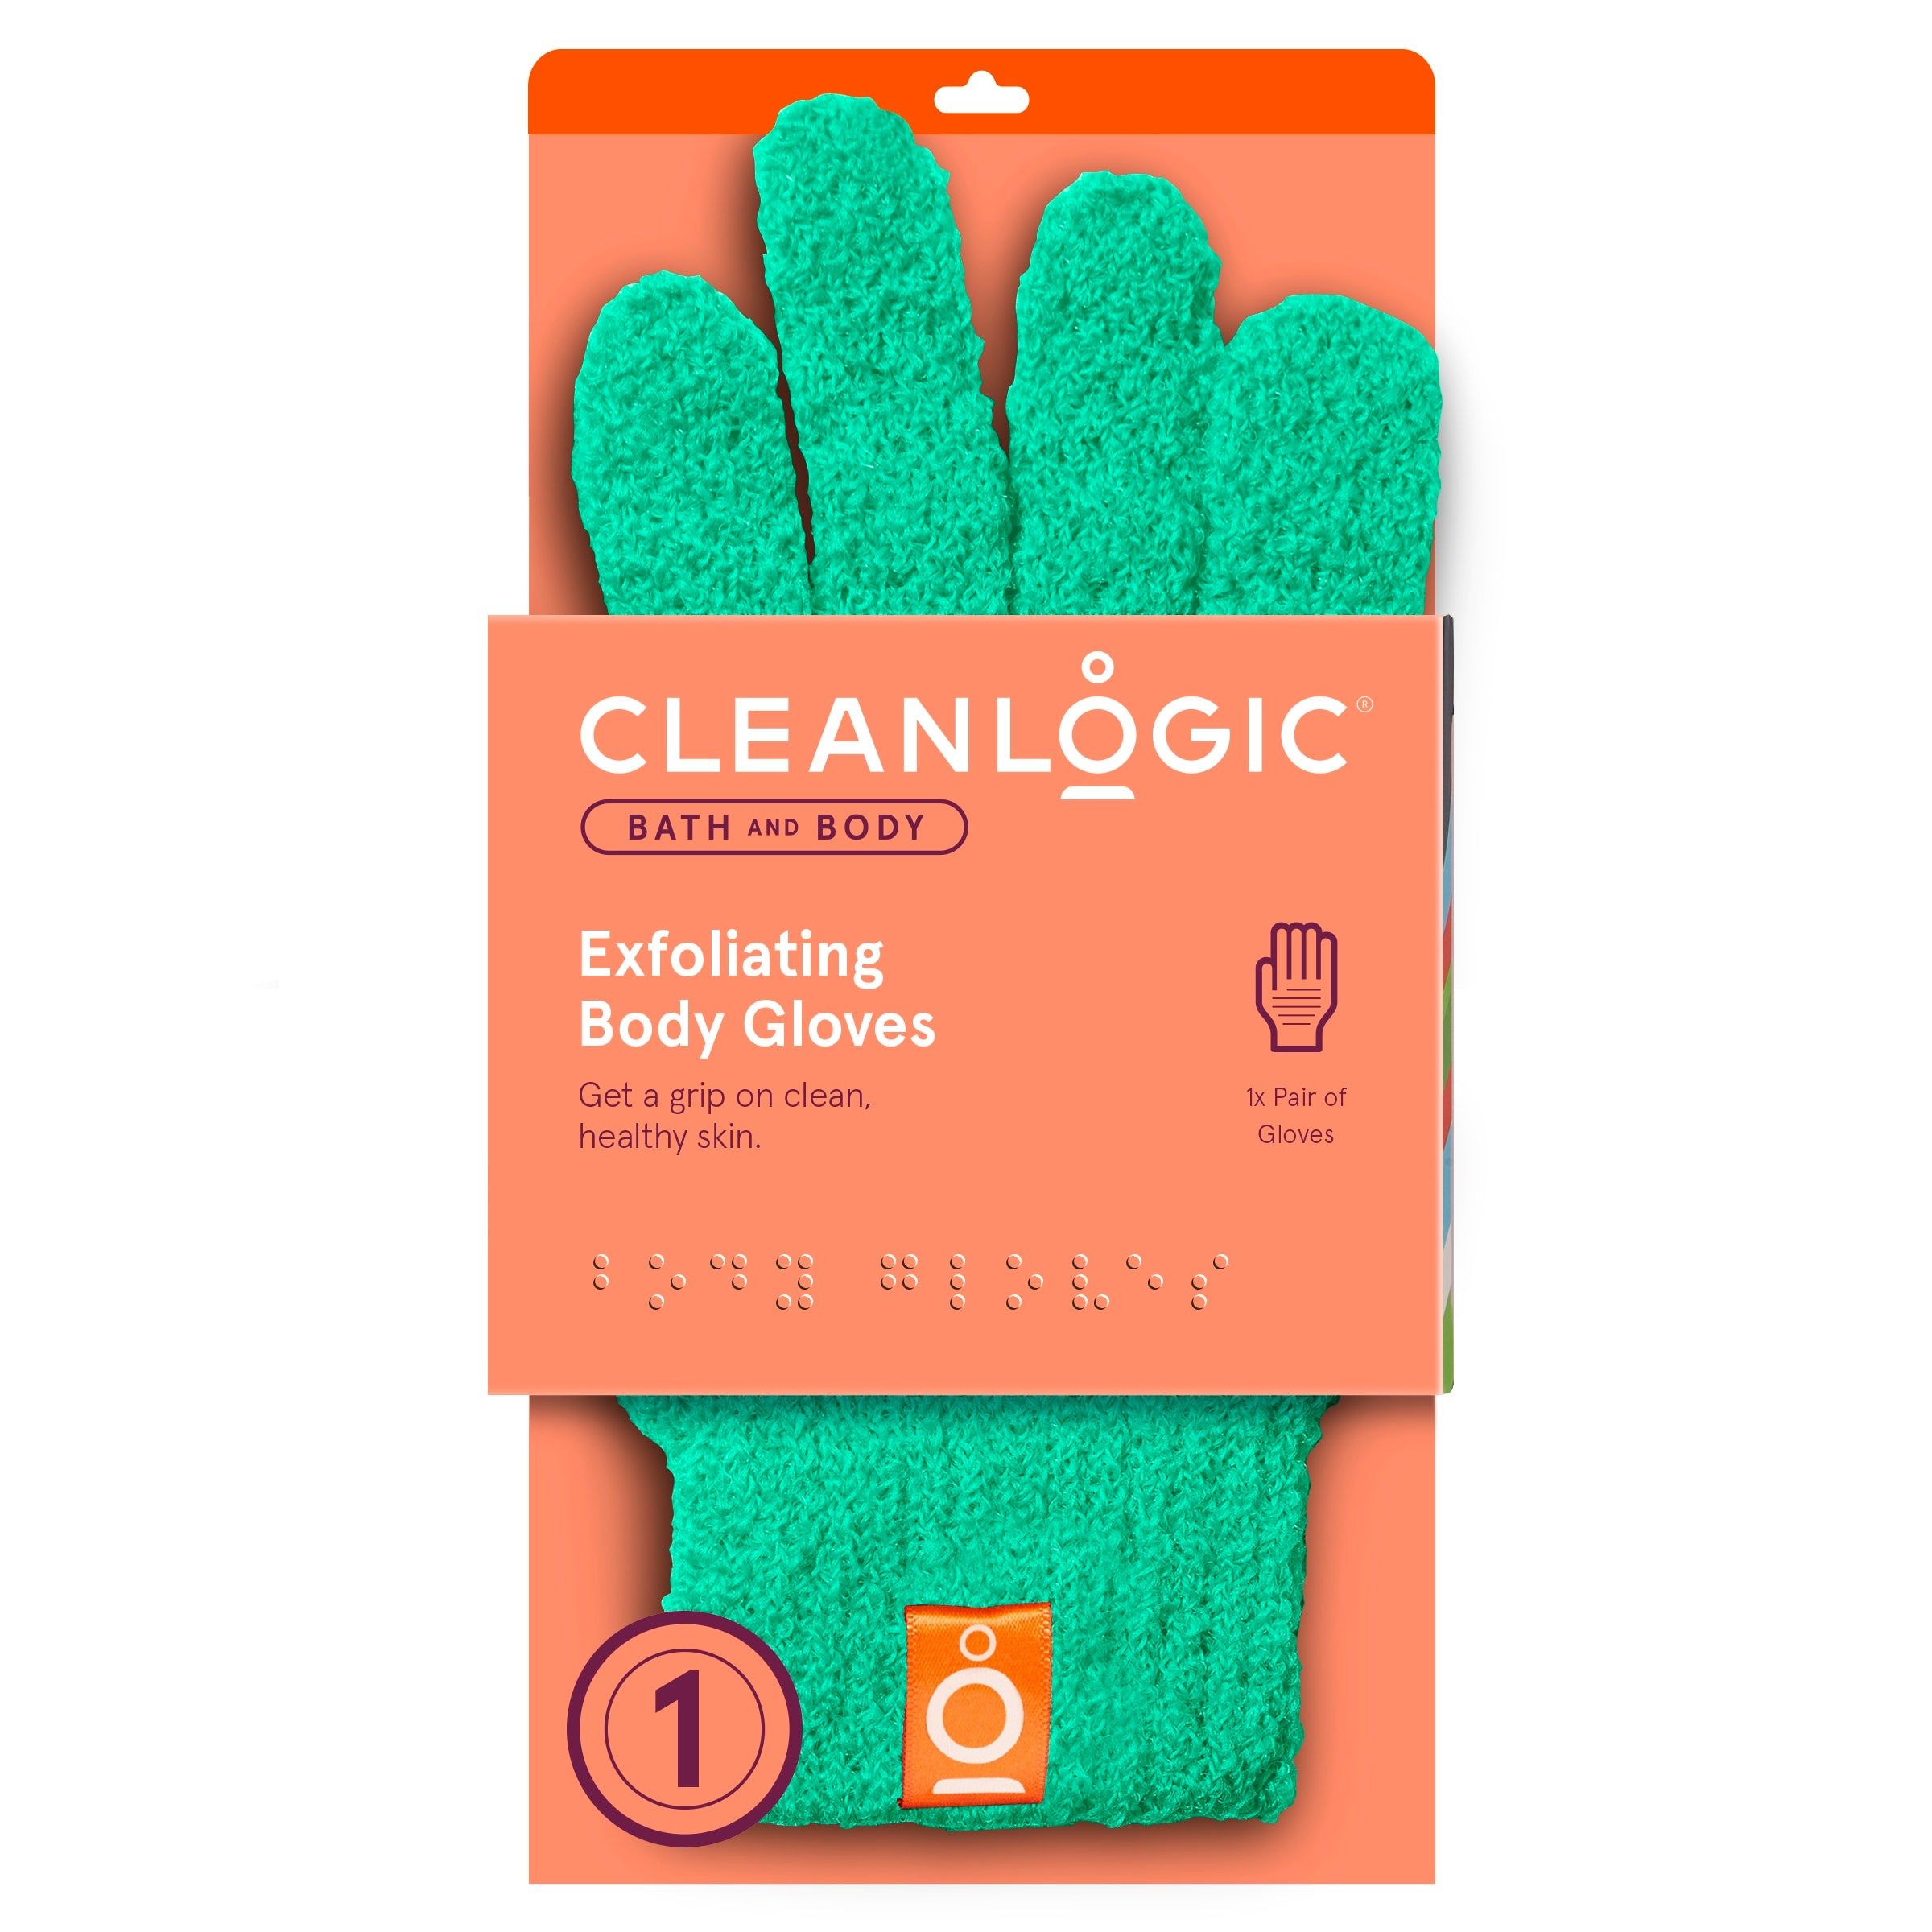 Cleanlogic Bath and Body Exfoliating Body Gloves